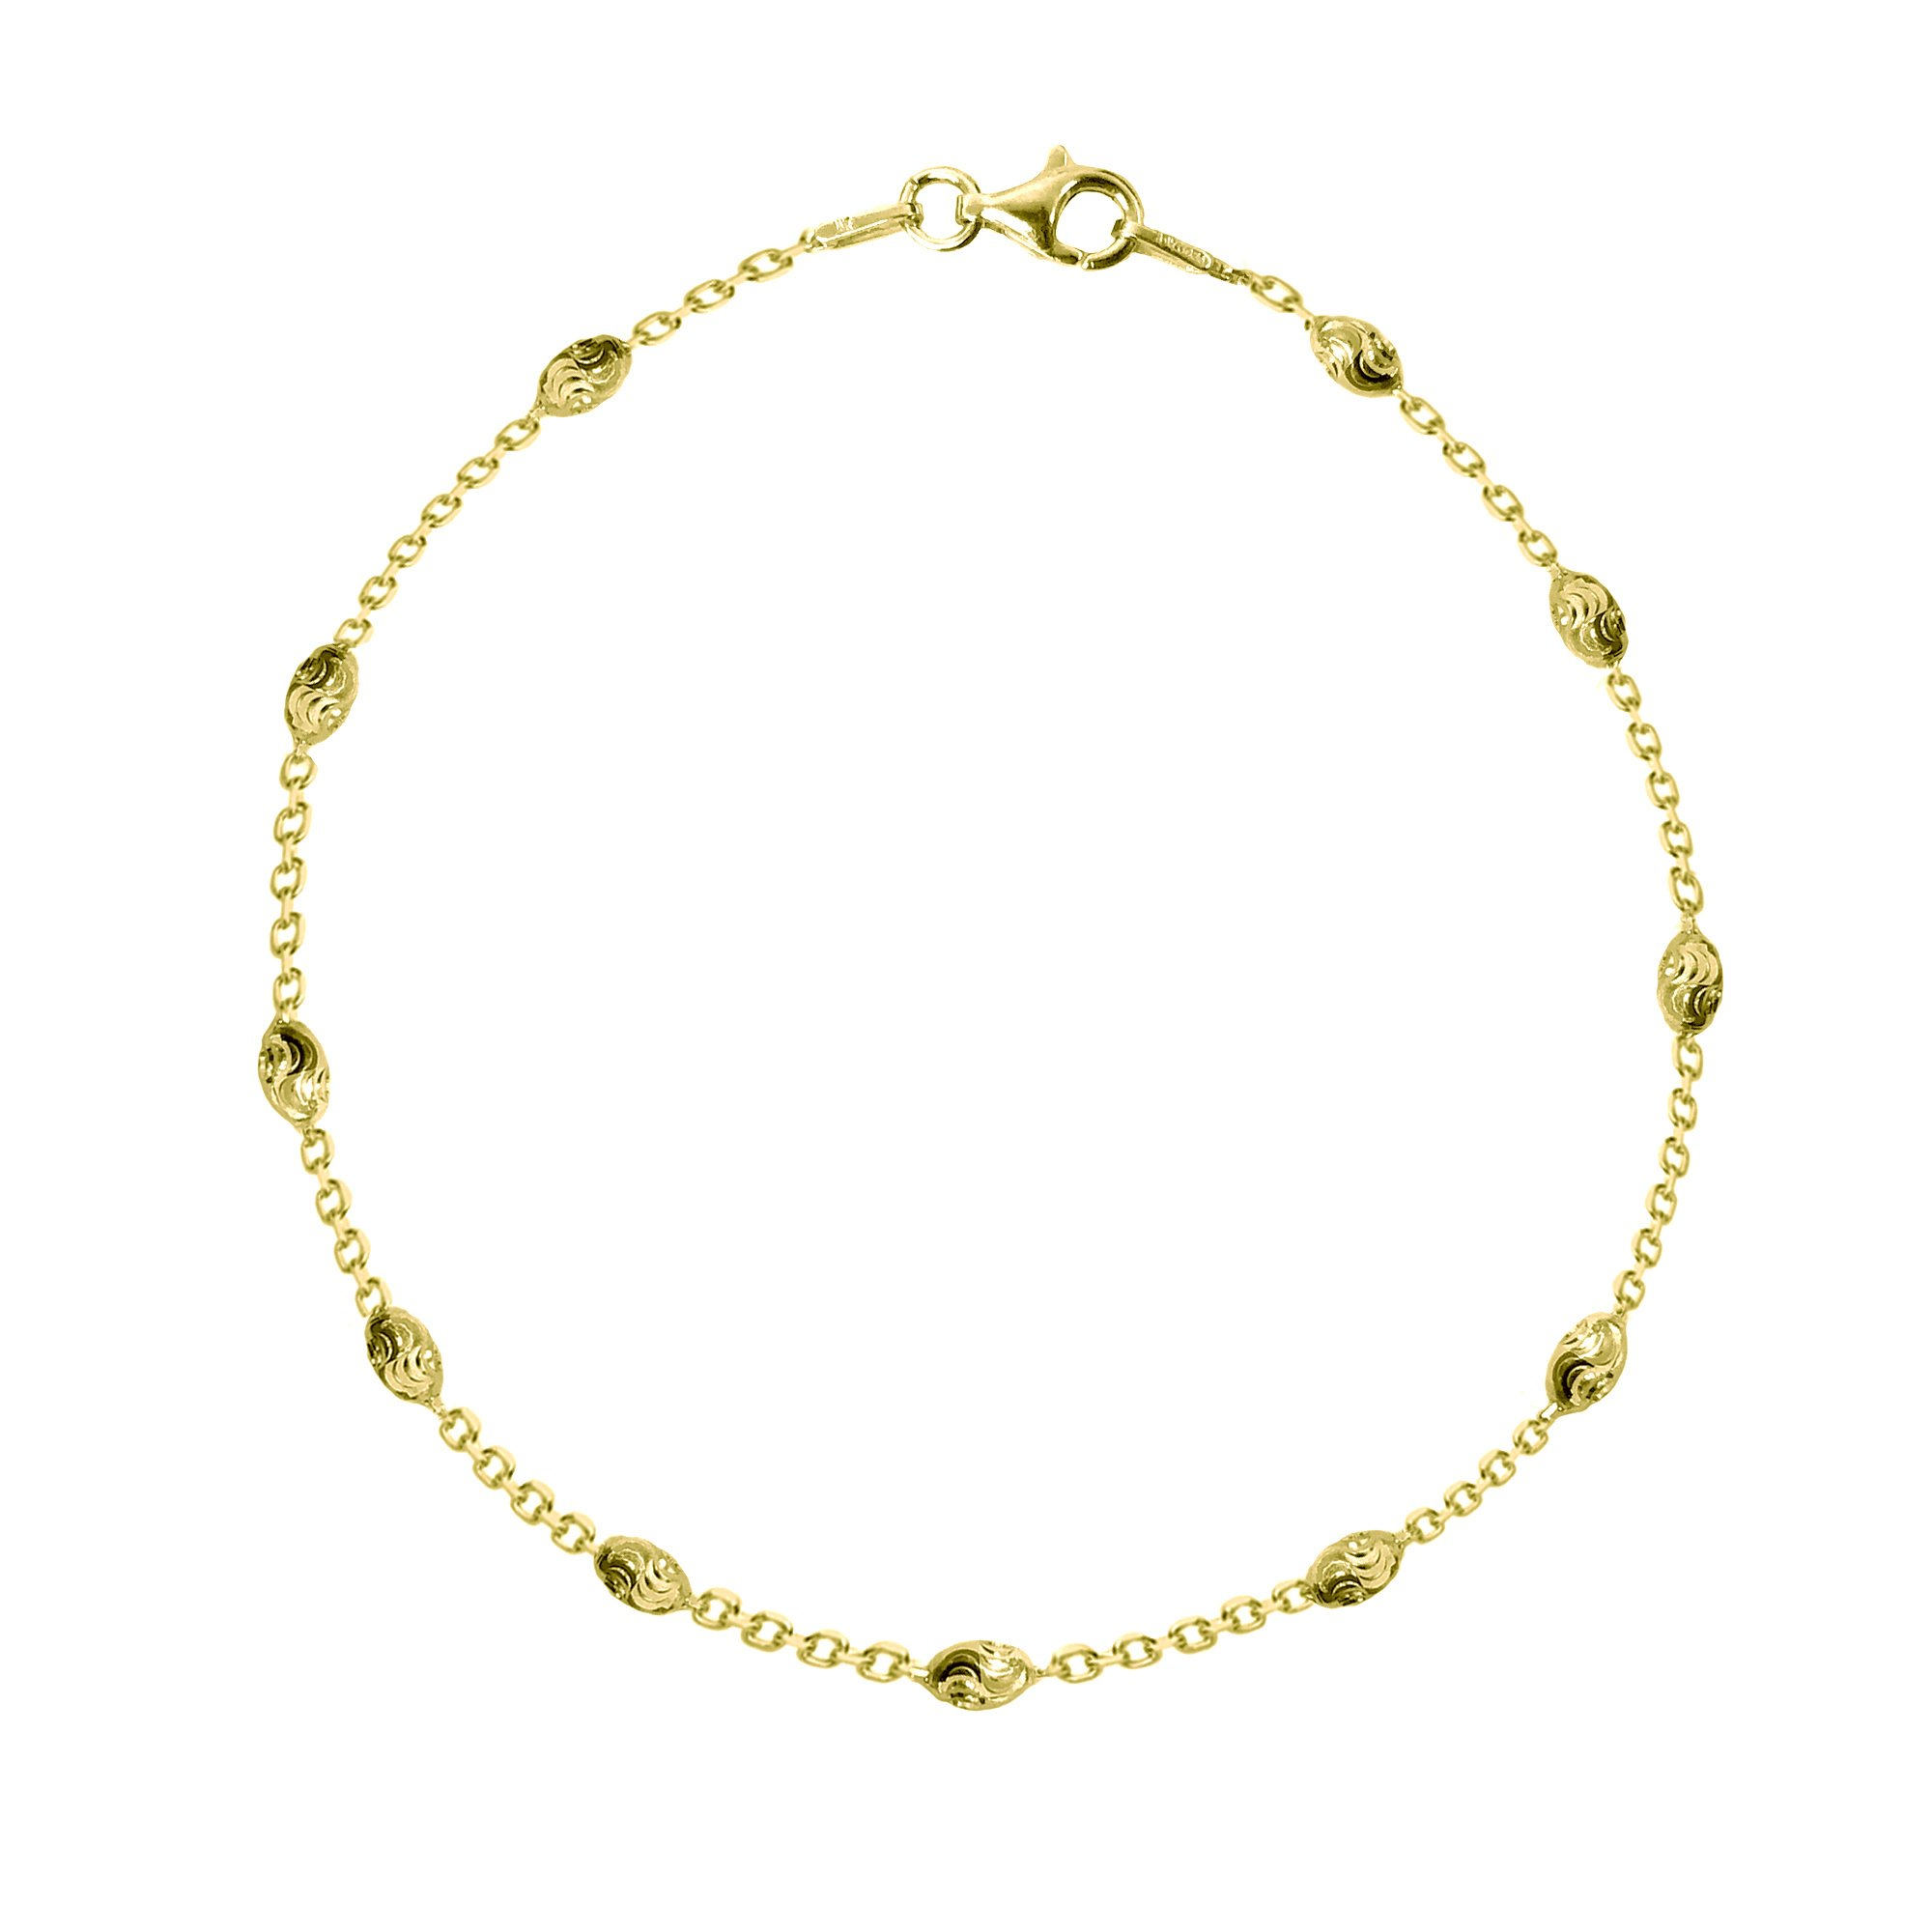 Sterling Silver or Gold-Tone Faceted Oval Barrel Bead Station Anklet